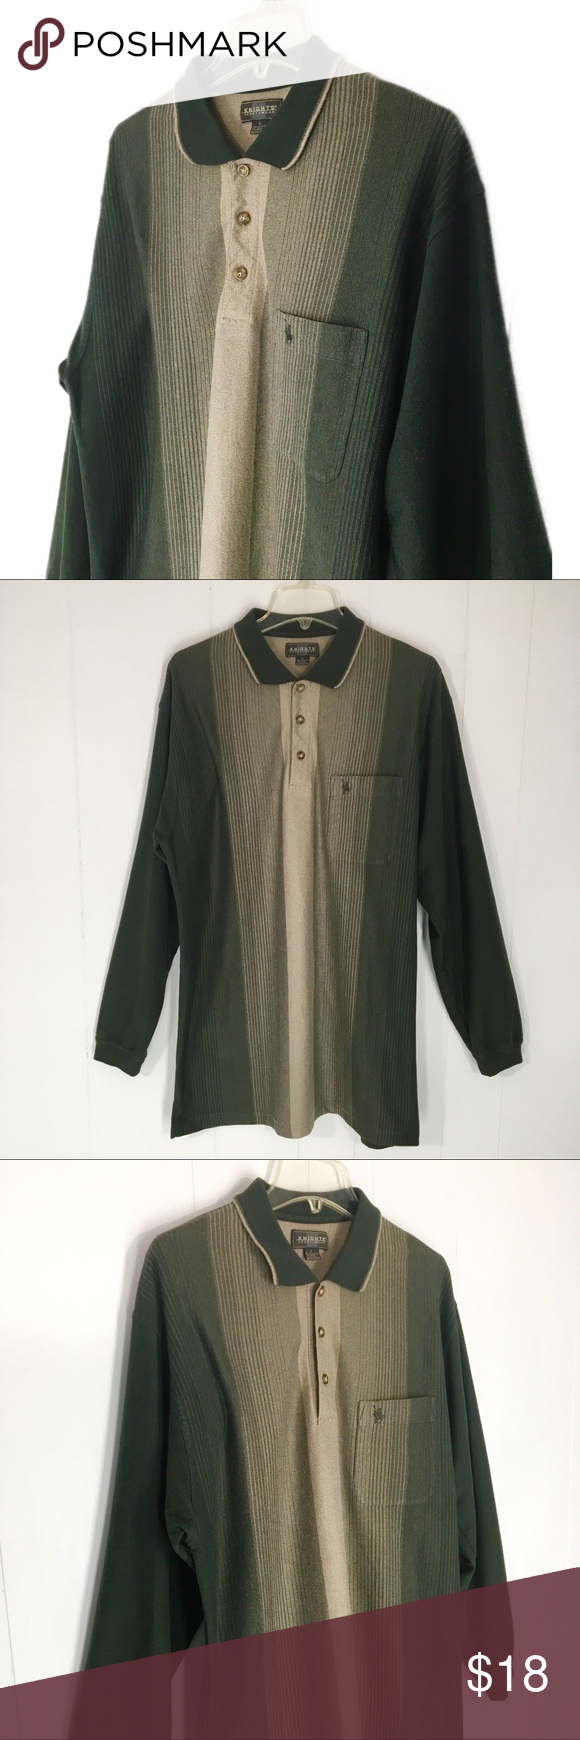 c836d4be VTG Knights Sportswear Polo Green Tan Men's Shirt vintage 80's / 90's Men's olive  green and